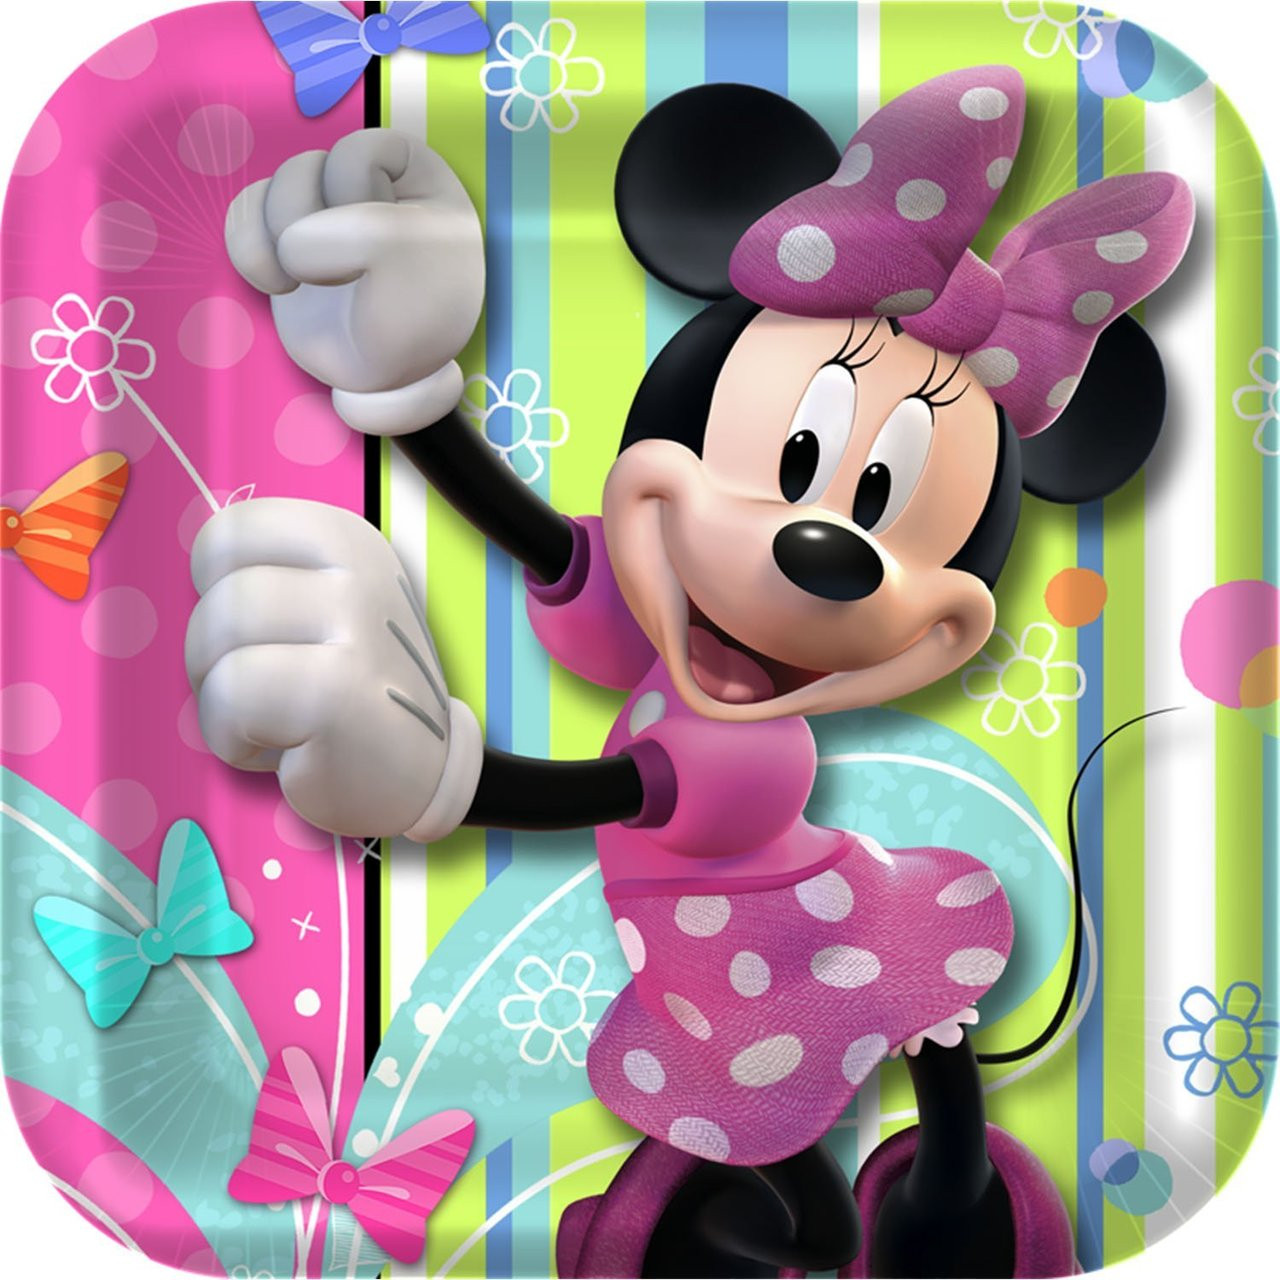 Minnie Mouse Bow-tique 7 Inch Small Square Dessert Party Cake Plates